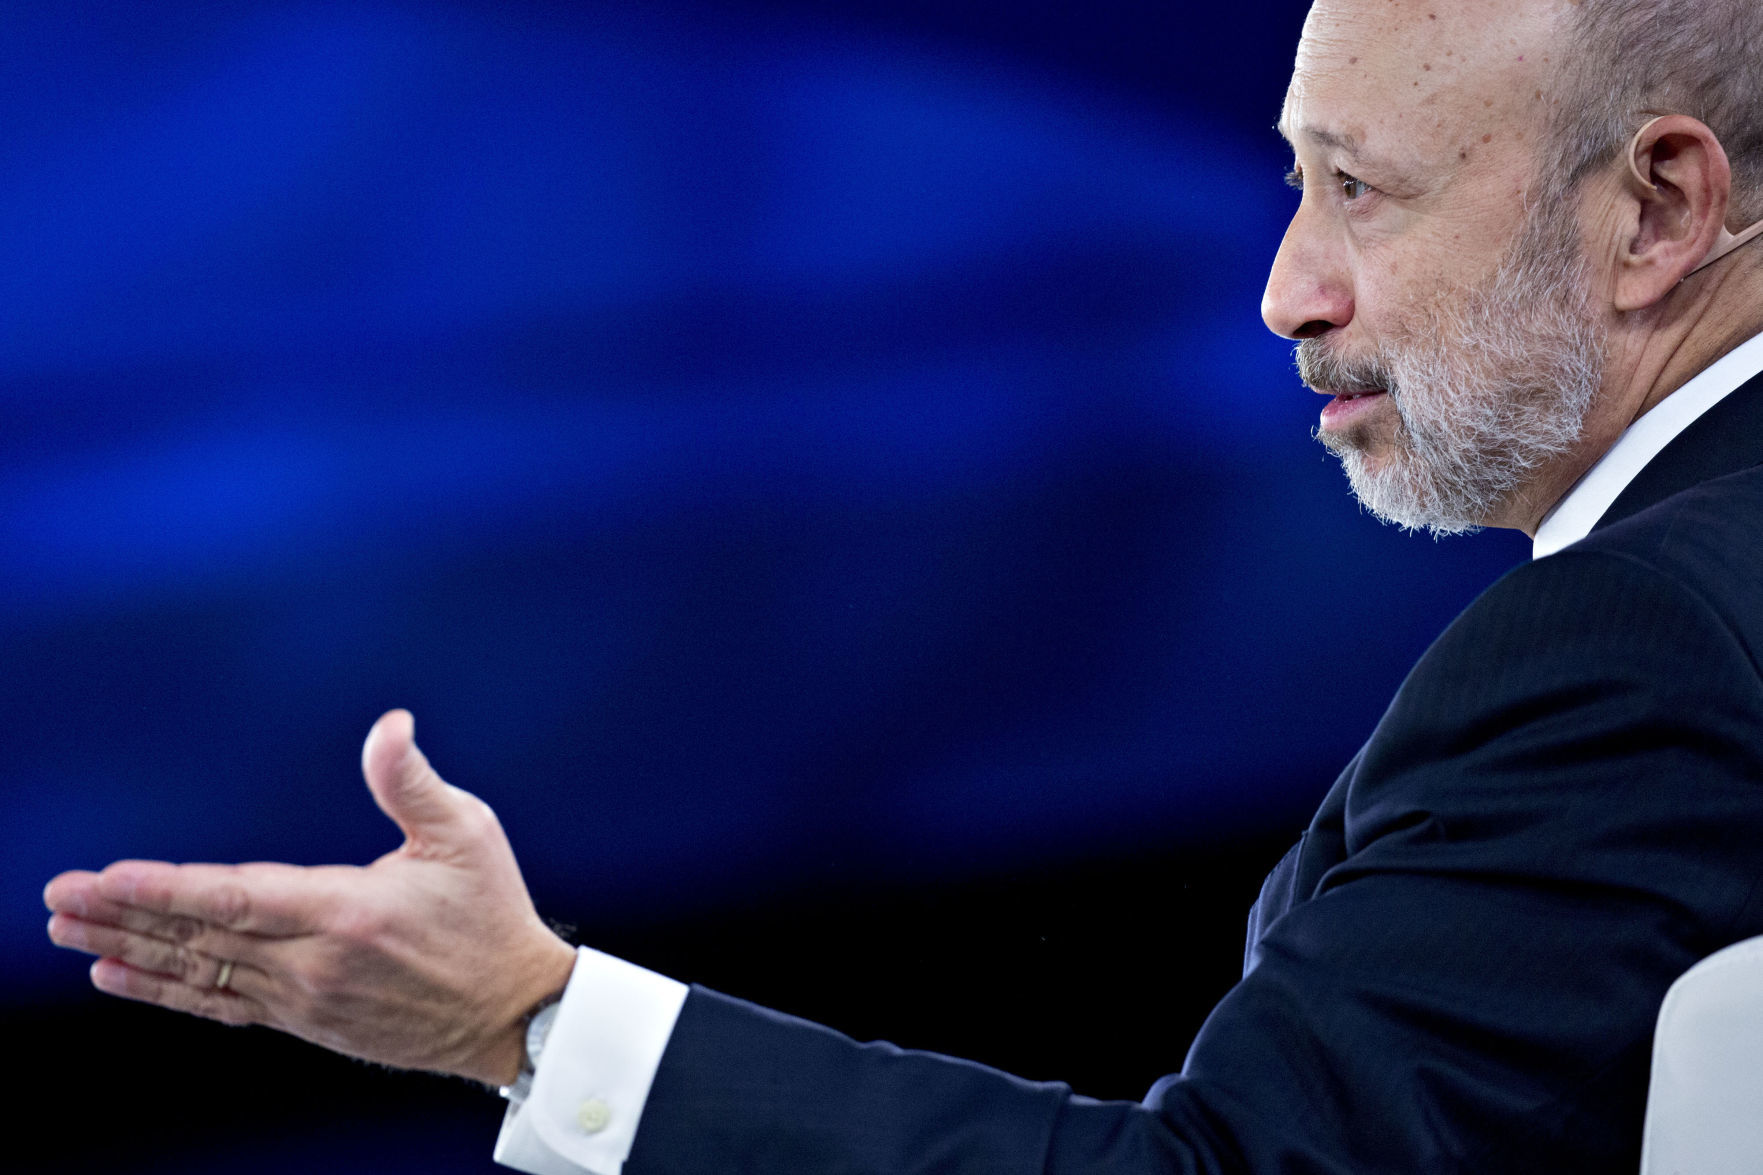 Blankfein son wedding anniversary